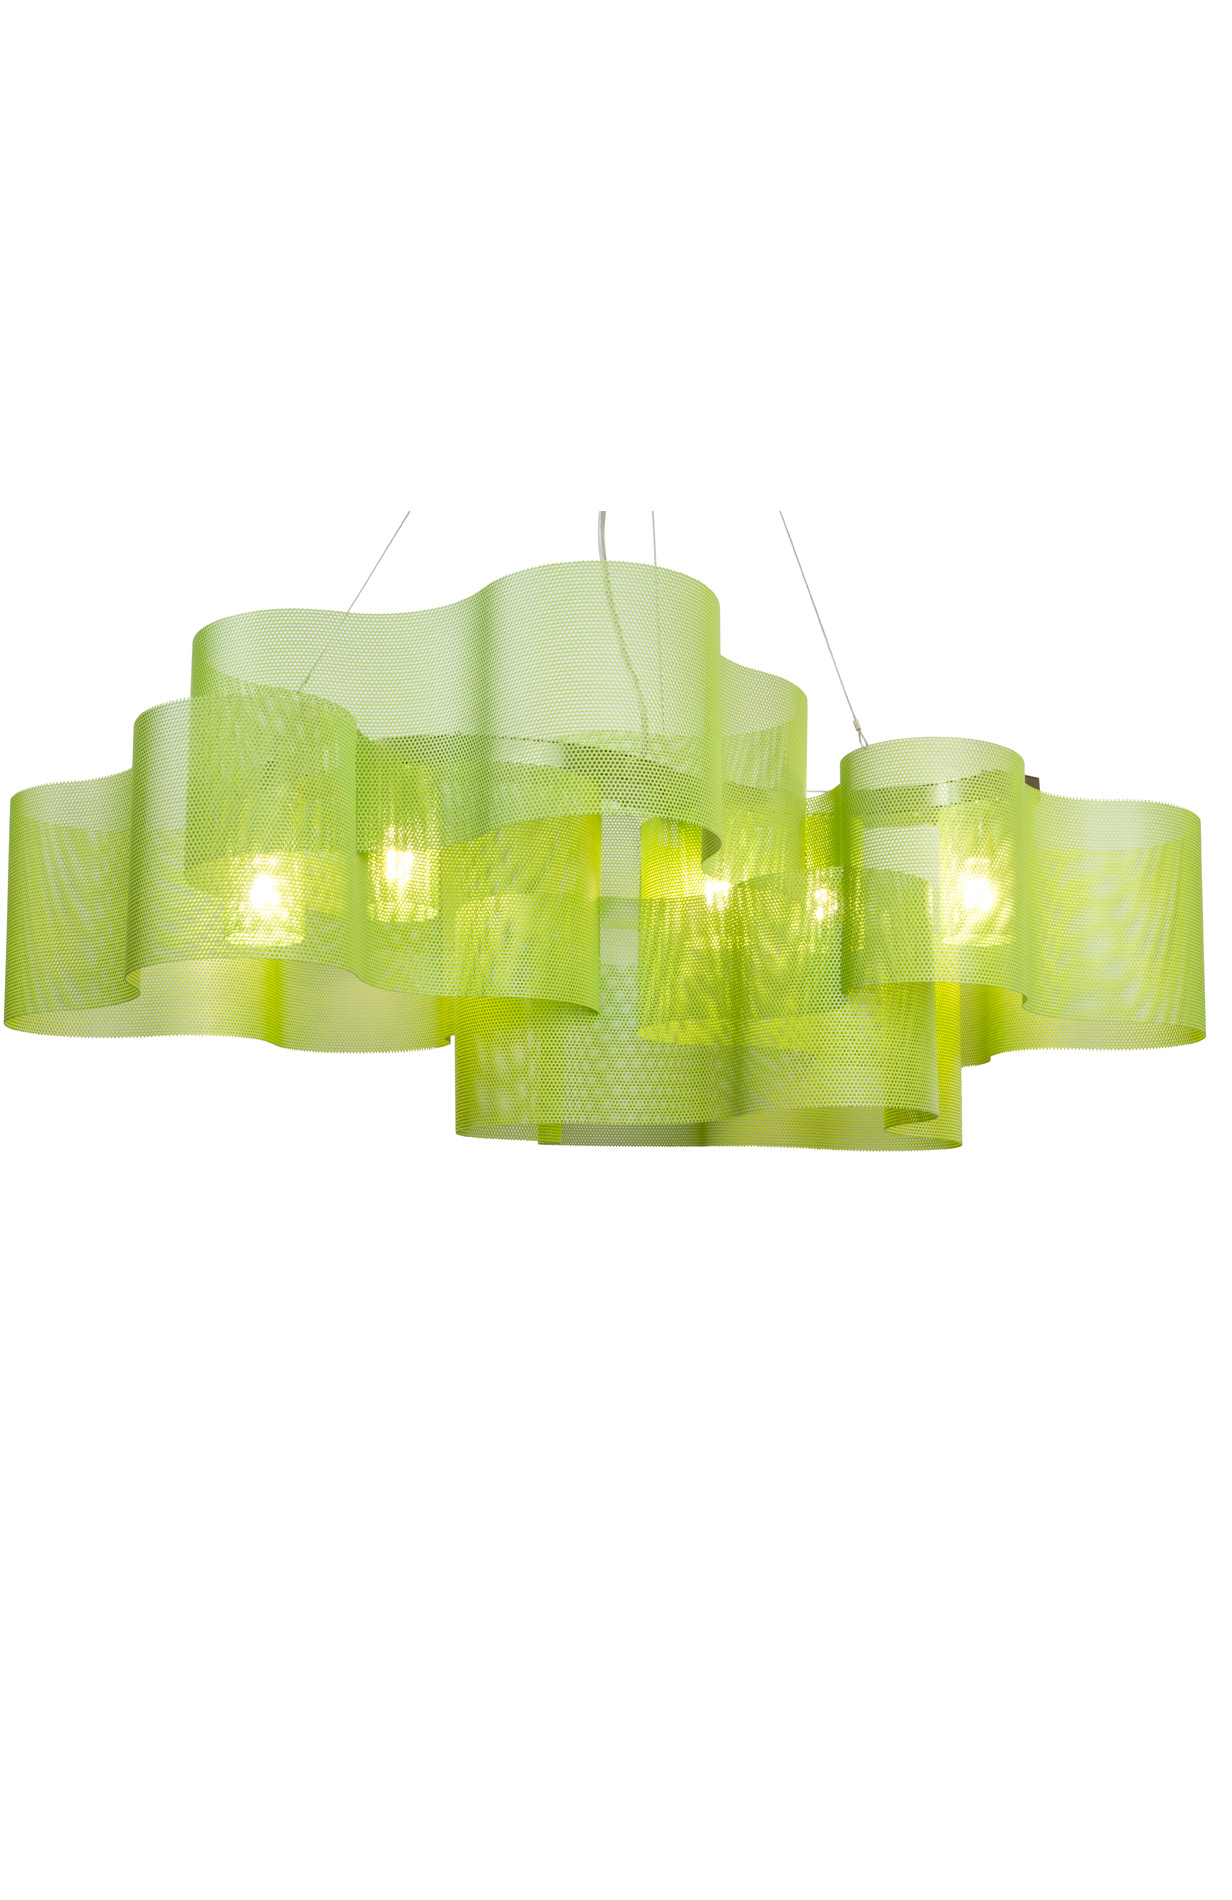 luminaire suspension nuage vert pentone greenery therry vidé